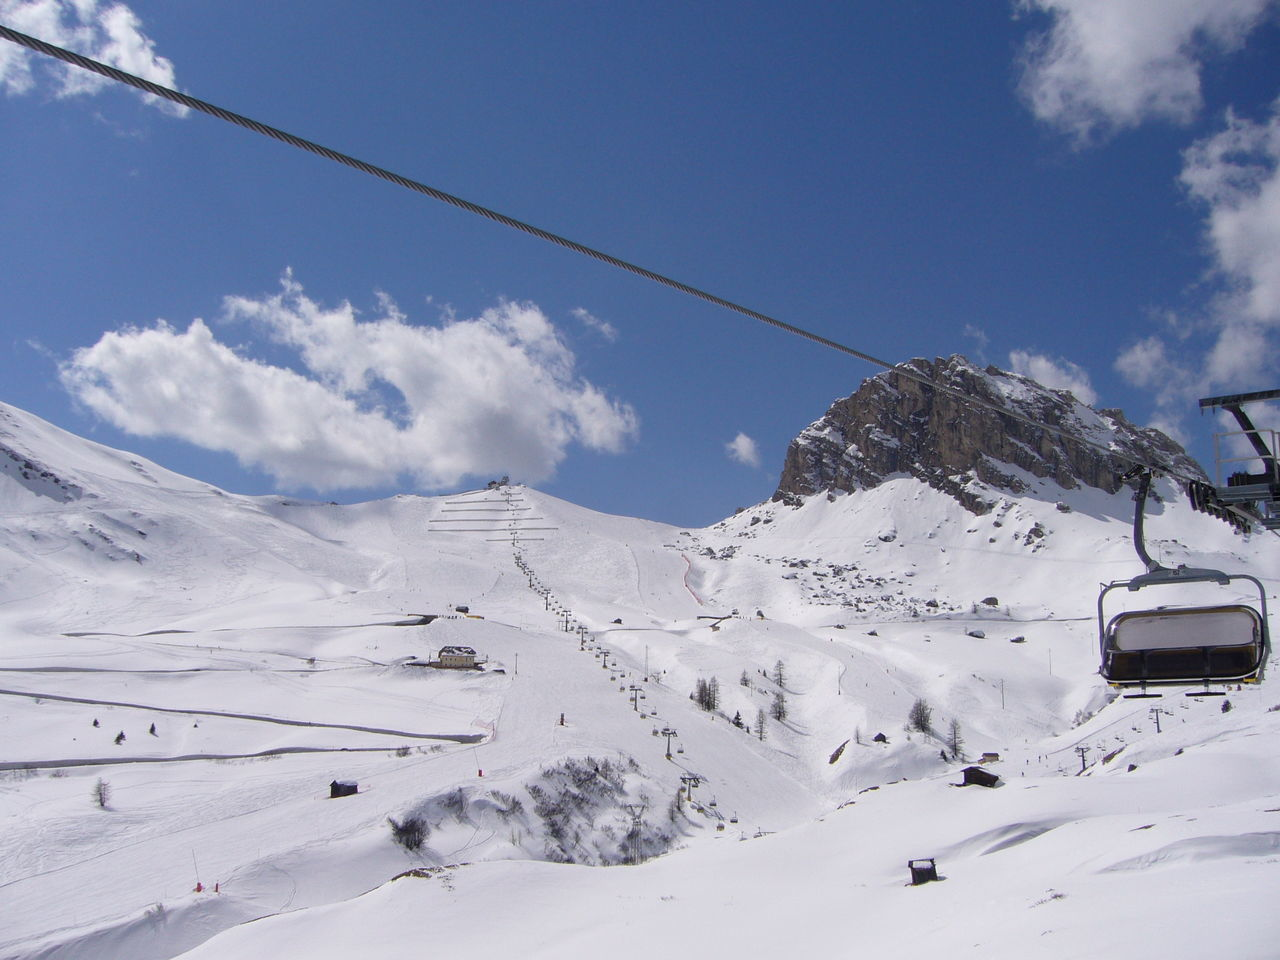 Snow Landscape Cold Temperature Nature Winter Outdoors Day Ski Lift Sky Beauty In Nature Mountain Skiing Scenics Snowcapped Mountain Beauty In Nature ❤️❤️ Somewhere Over The Rainbow Scenics Nature Scenics Landscape Winter Dolomiti Skyline Blue And White Ski Slope Up In Clouds Beauty In Nature Dolomiti Italy